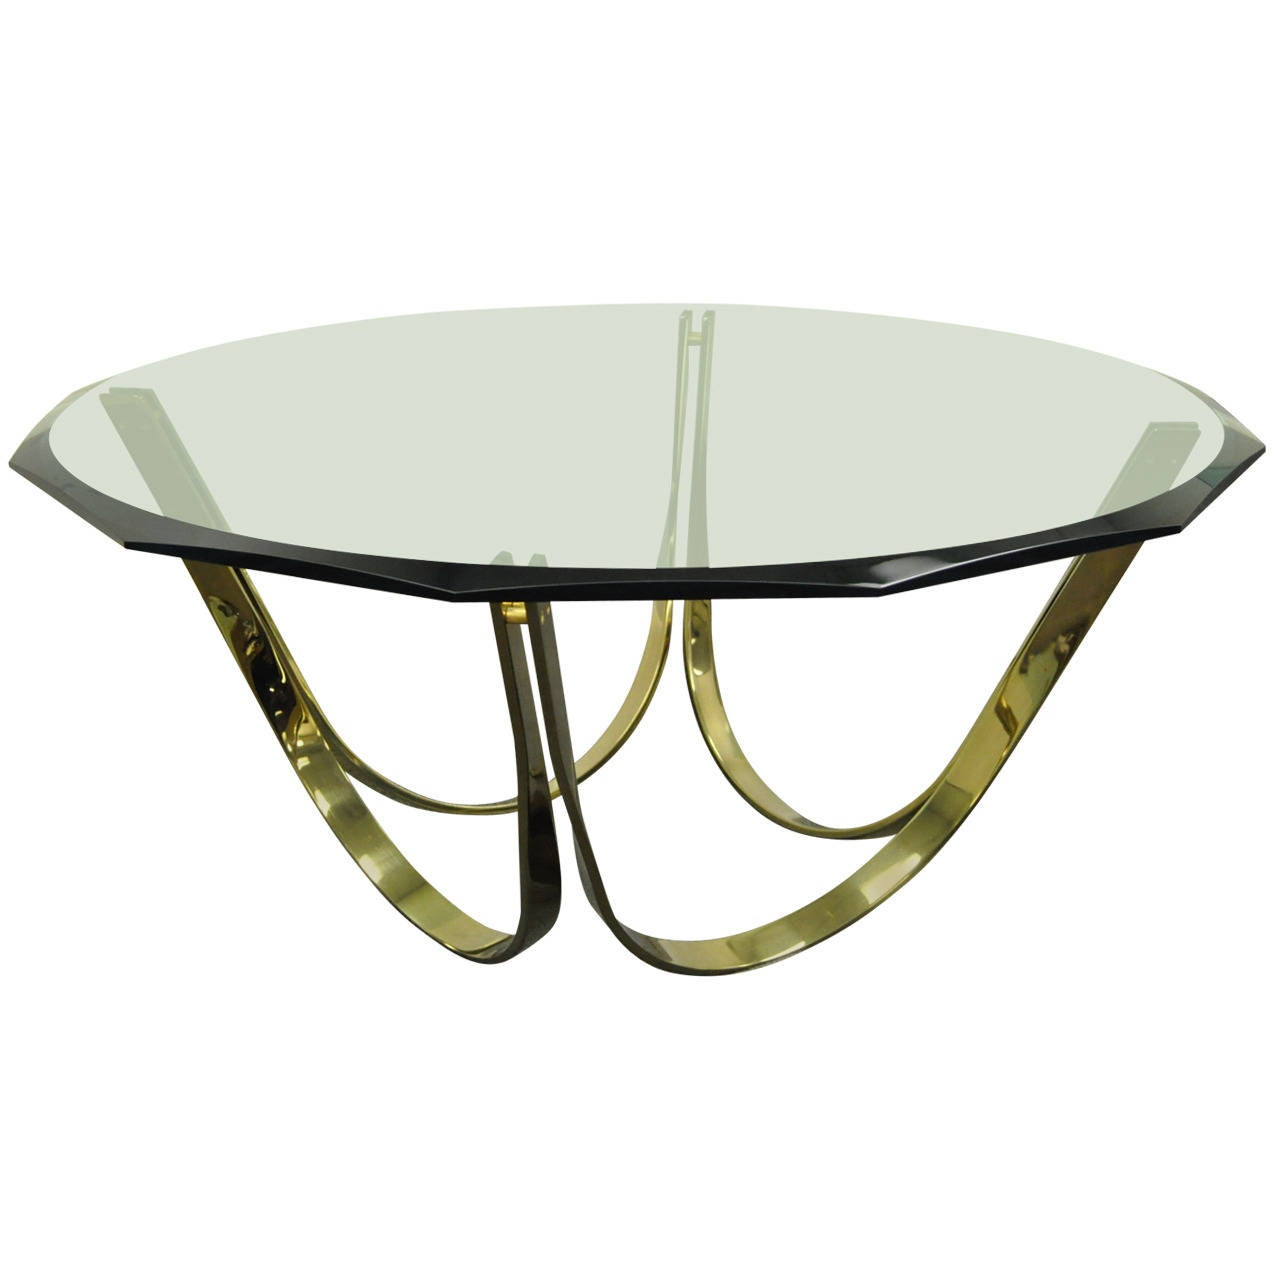 Trimark Brass Plated Steel And Glass Coffee Table After